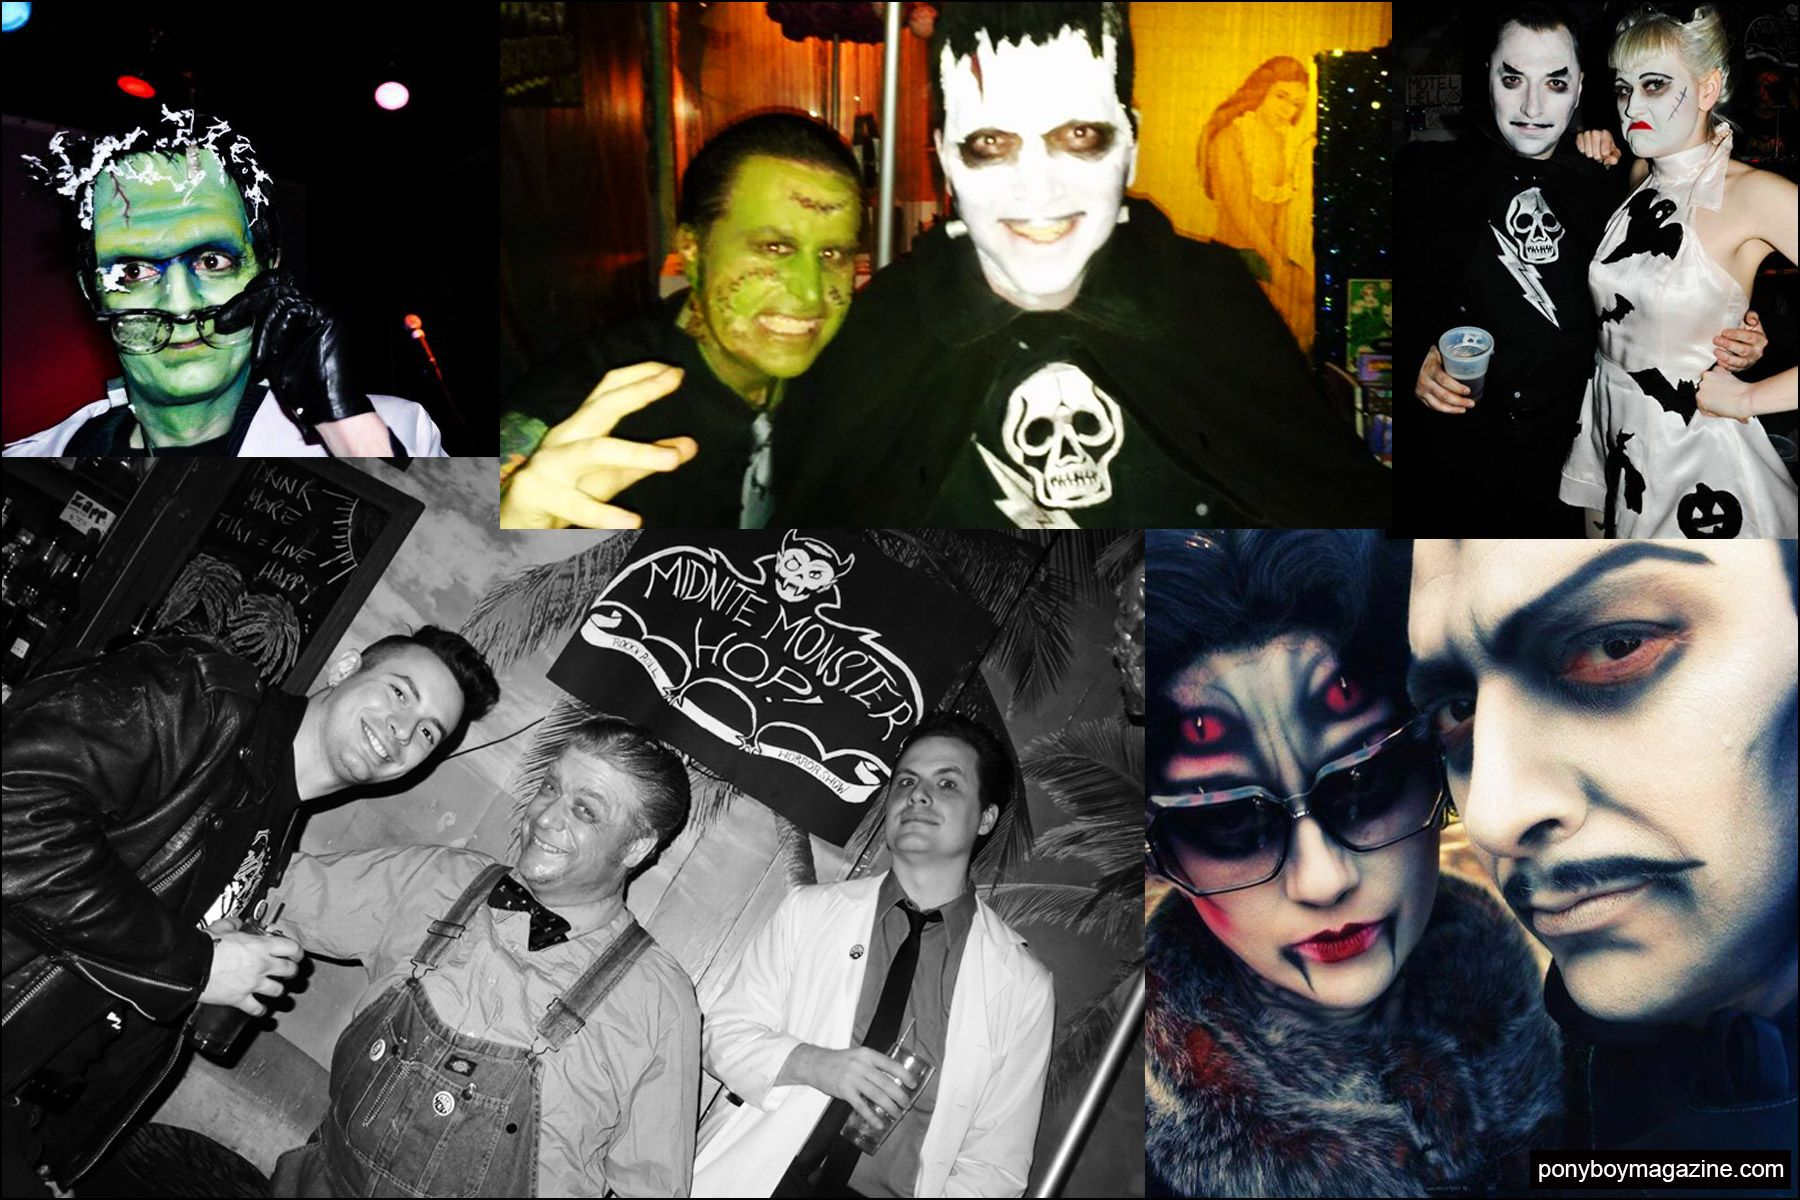 Assorted snapshots of colorful party attendees at the Midnite Monster Hop in New York City. Ponyboy magazine NY.